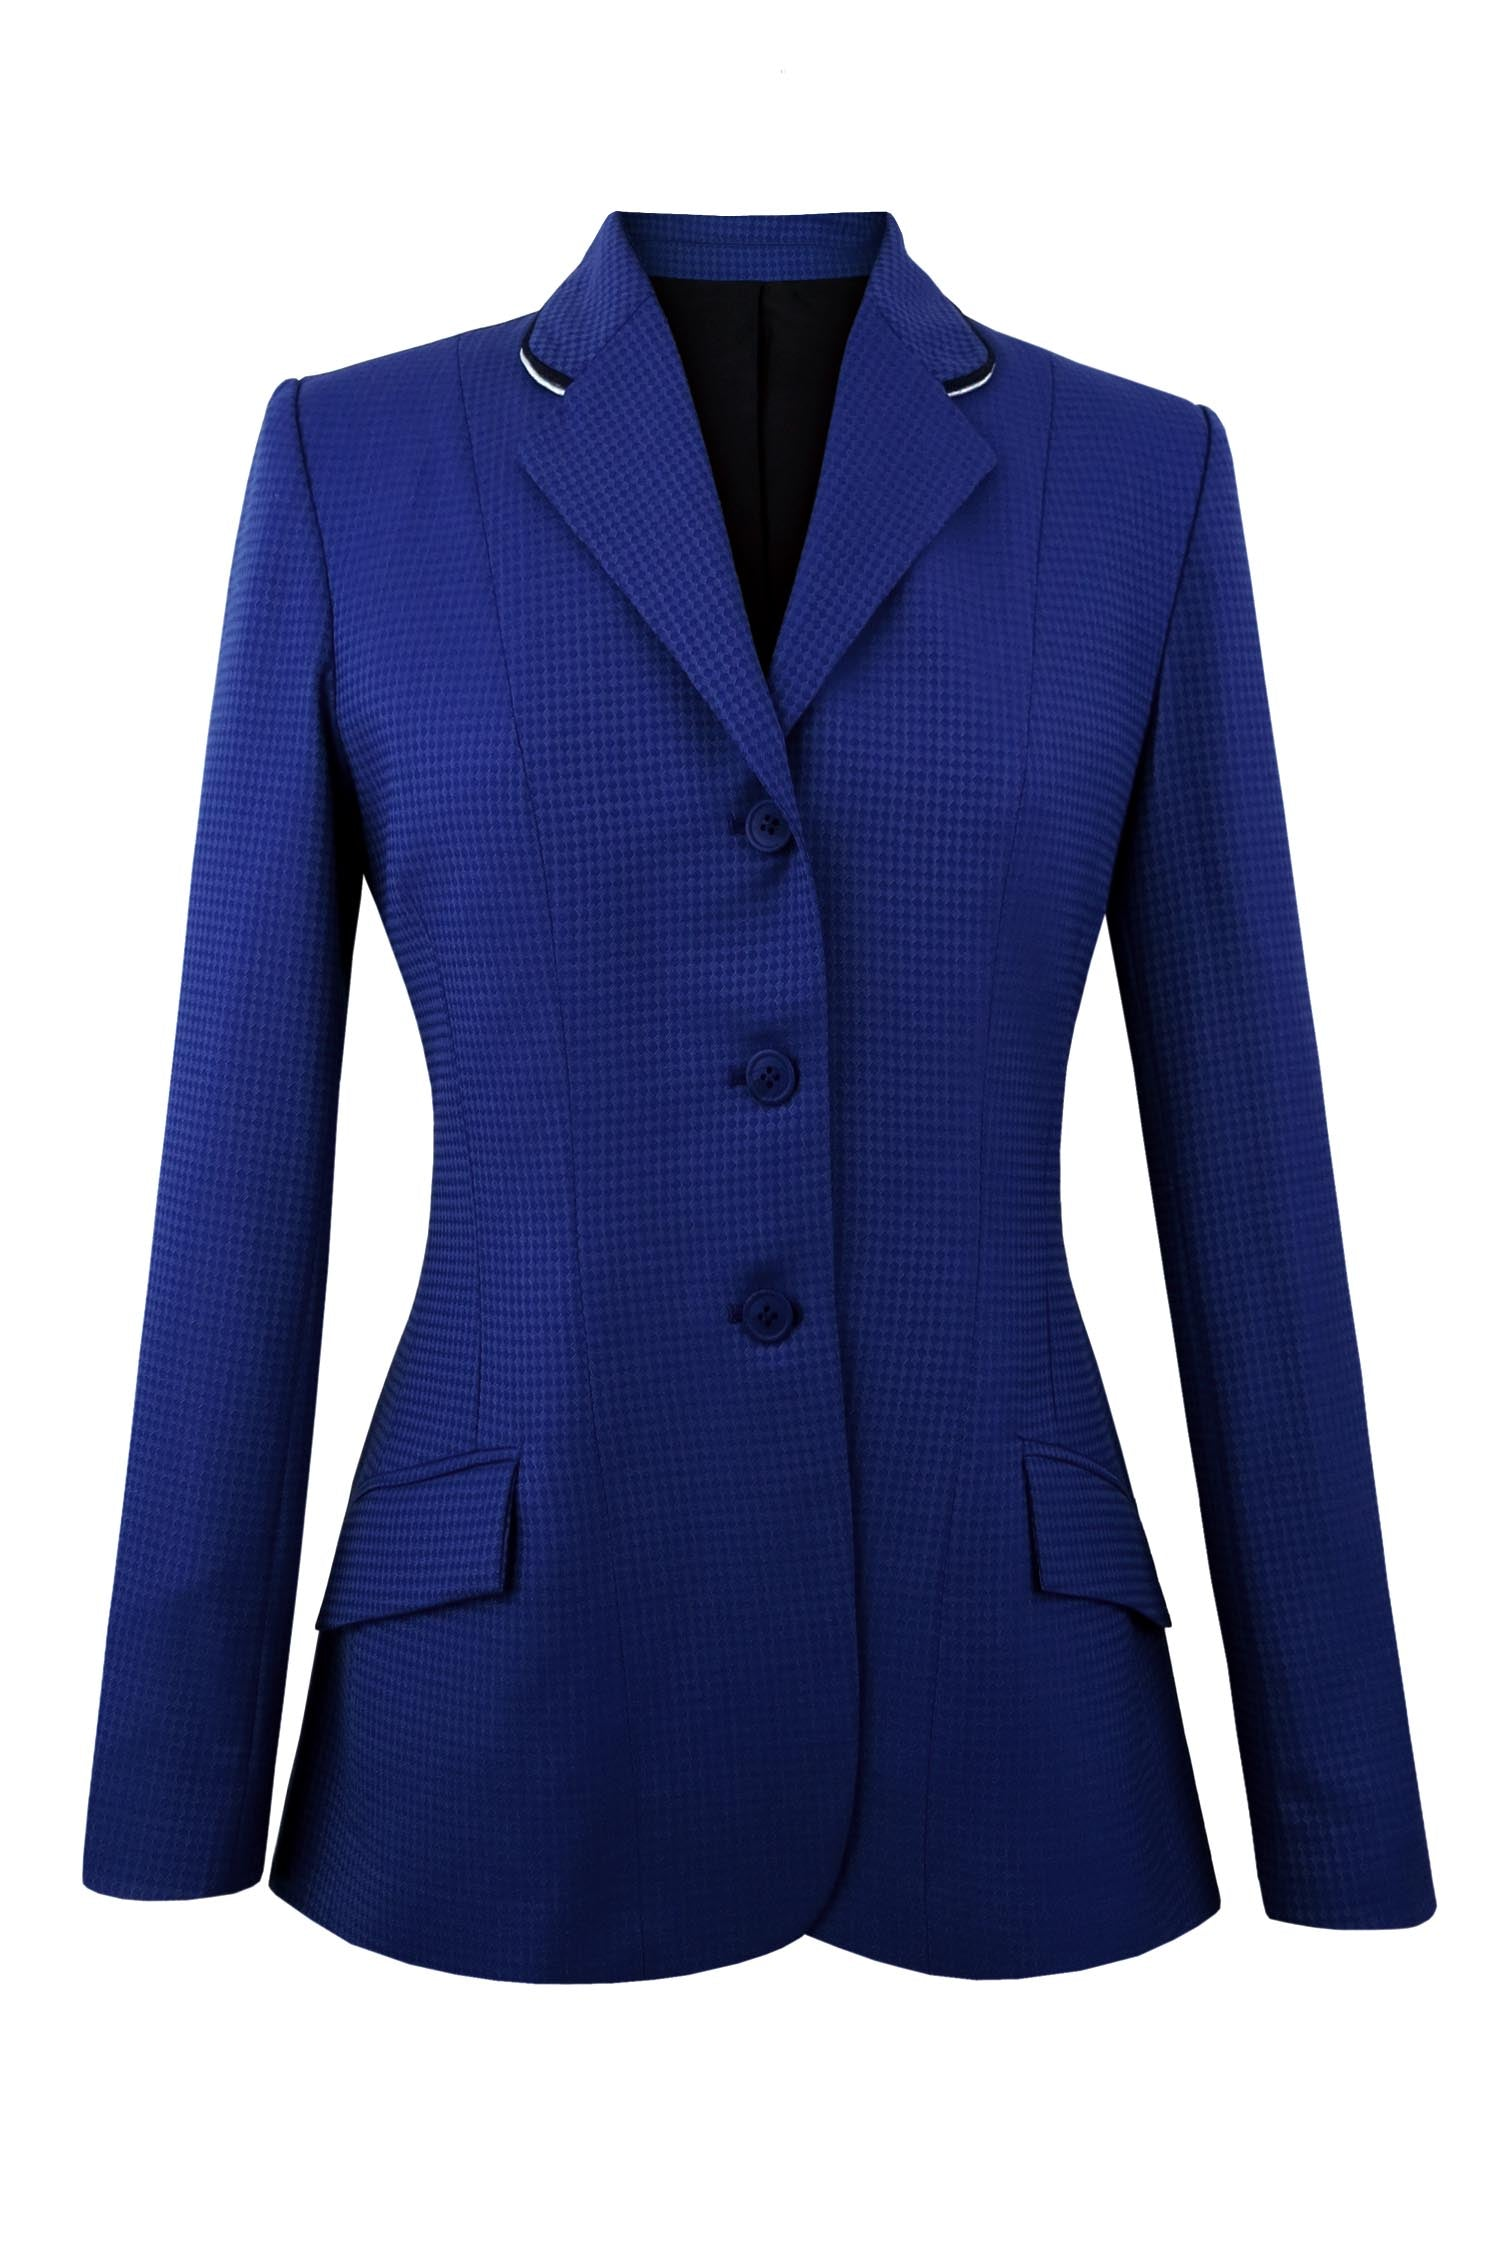 French blue diamond pattern wool riding jacket.  Collar has silver and black piping.